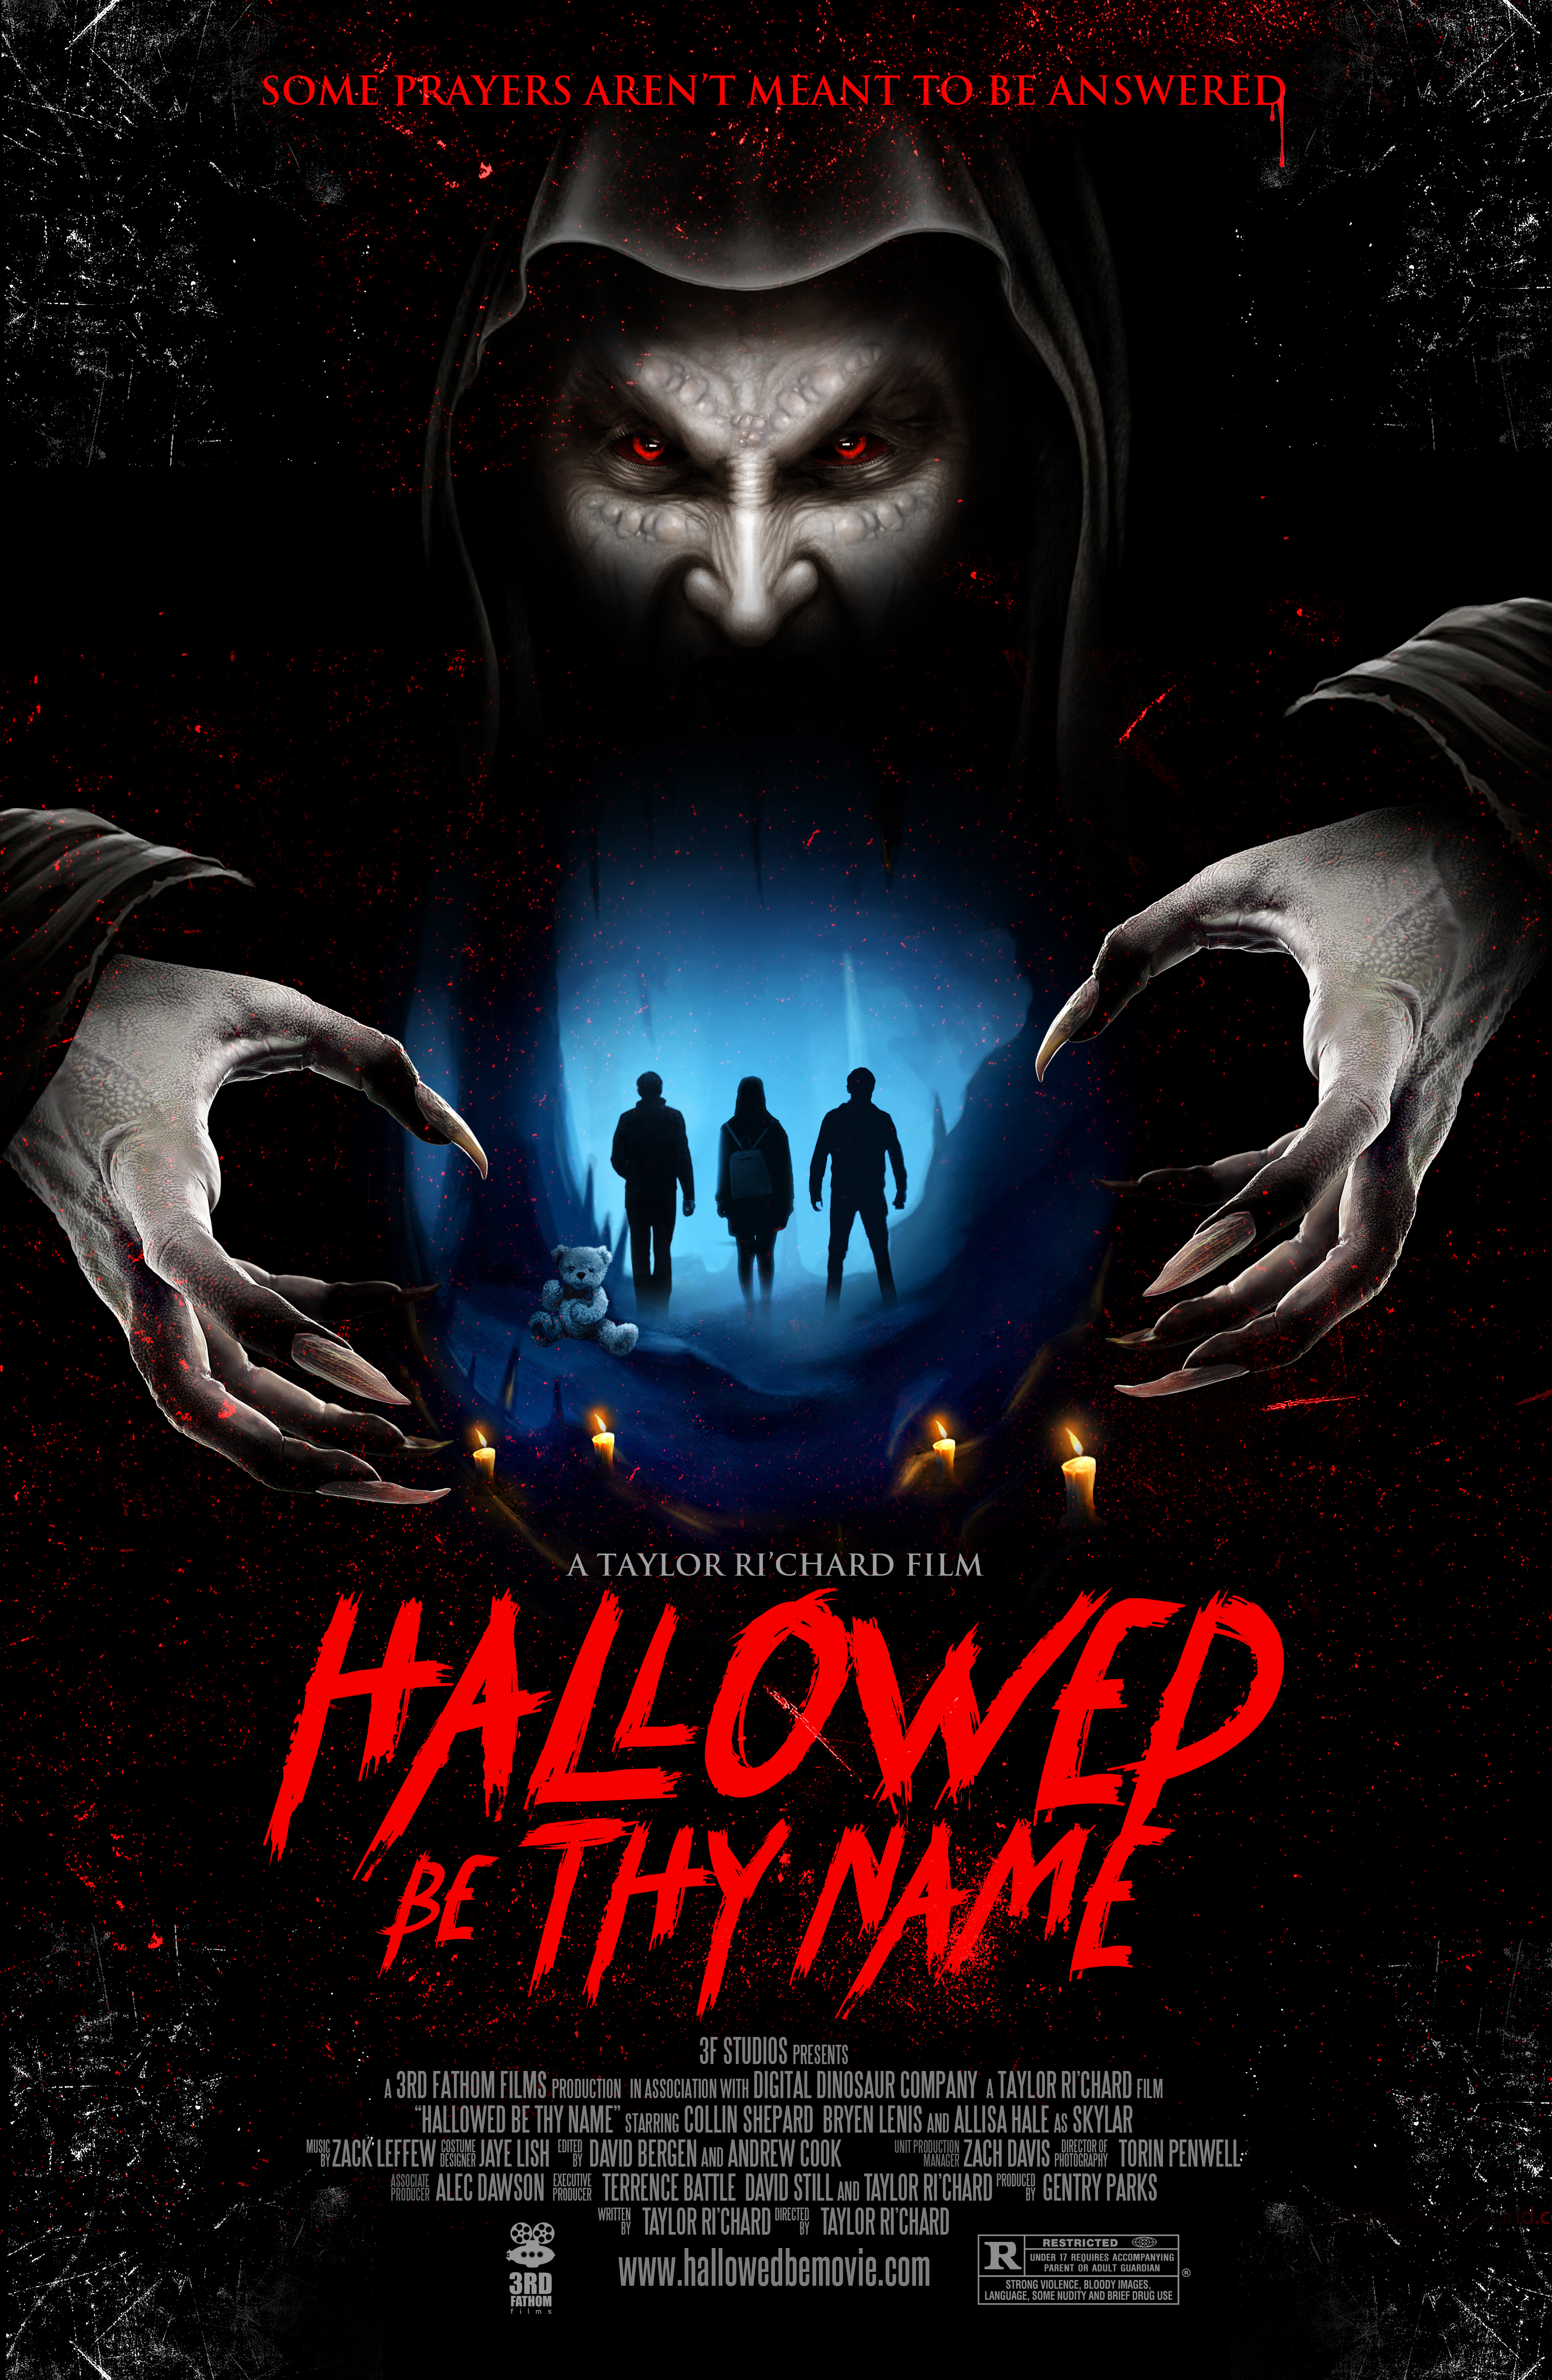 Hallowed Be Thy Name Poster